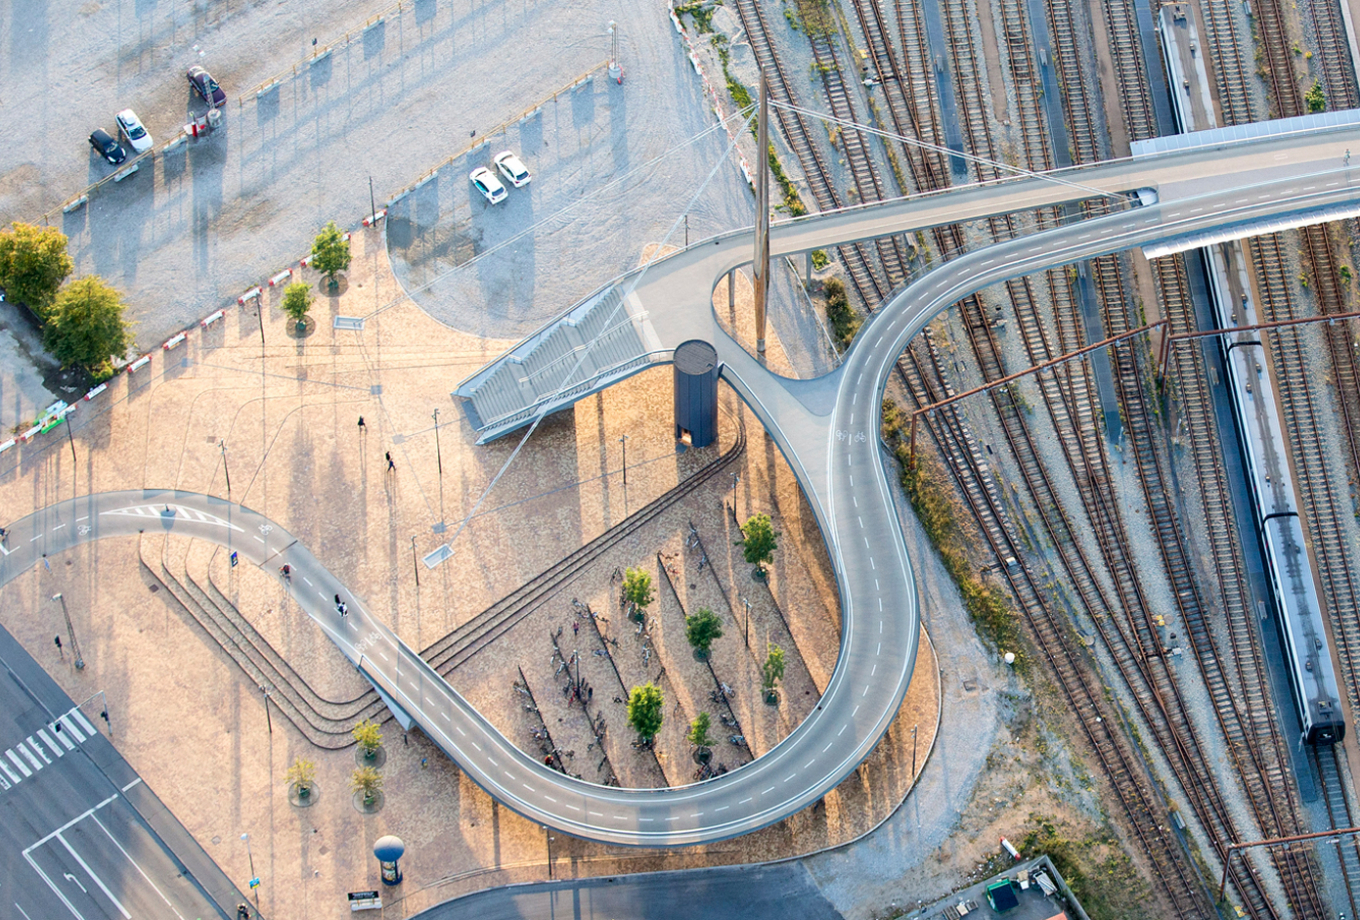 gottlieb_paludan_architects_byens_bro_odense_stibro_bridge_cyklister_aerial_photo_1